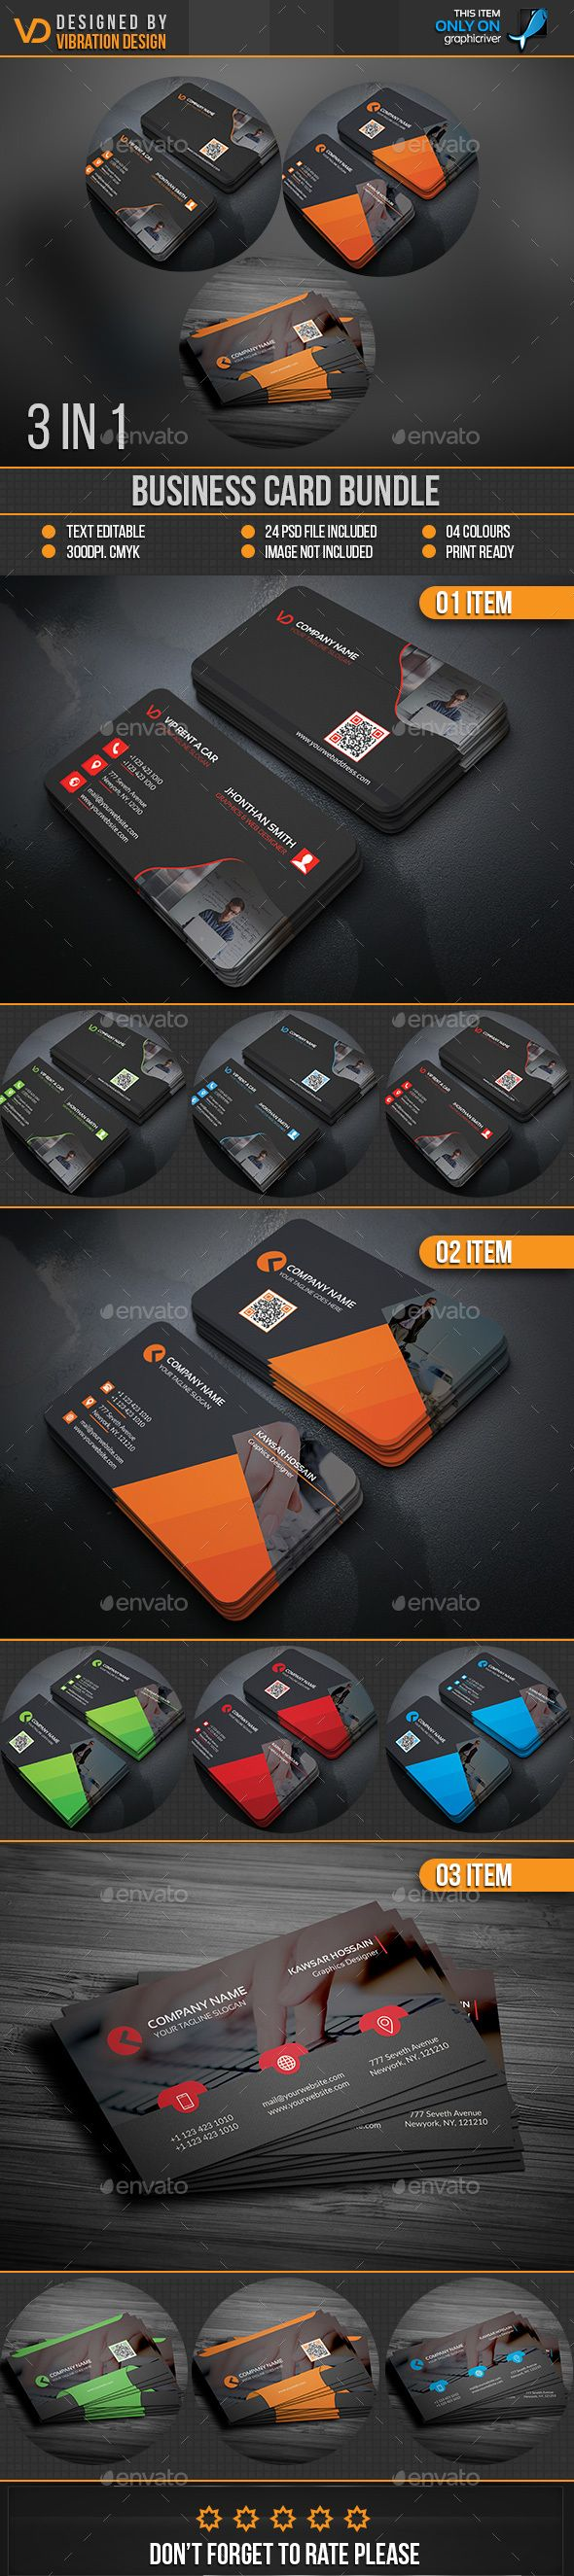 images about industry specific business cards business card bundle industry specific business cards here